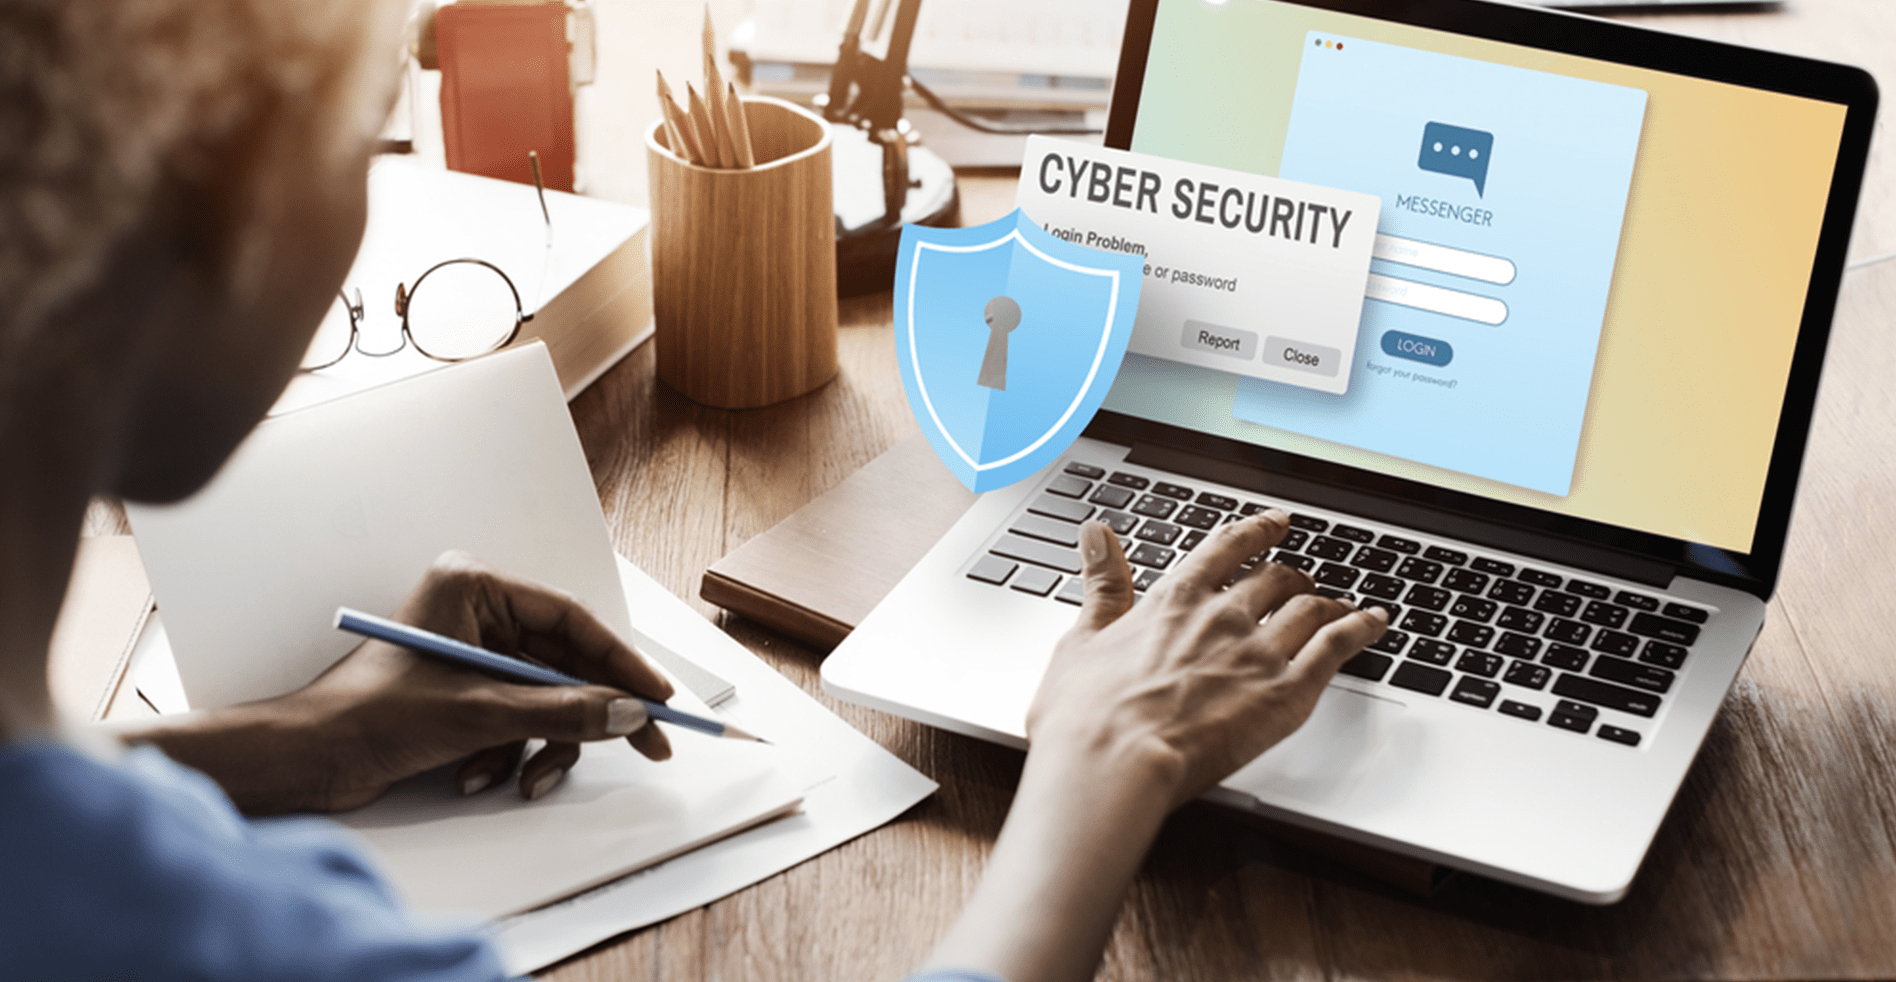 Cyber Security - DTS Provides Innovative Home Office Cybersecurity Solutions for the Nearly 50% of Remote Workers Infected By Malware